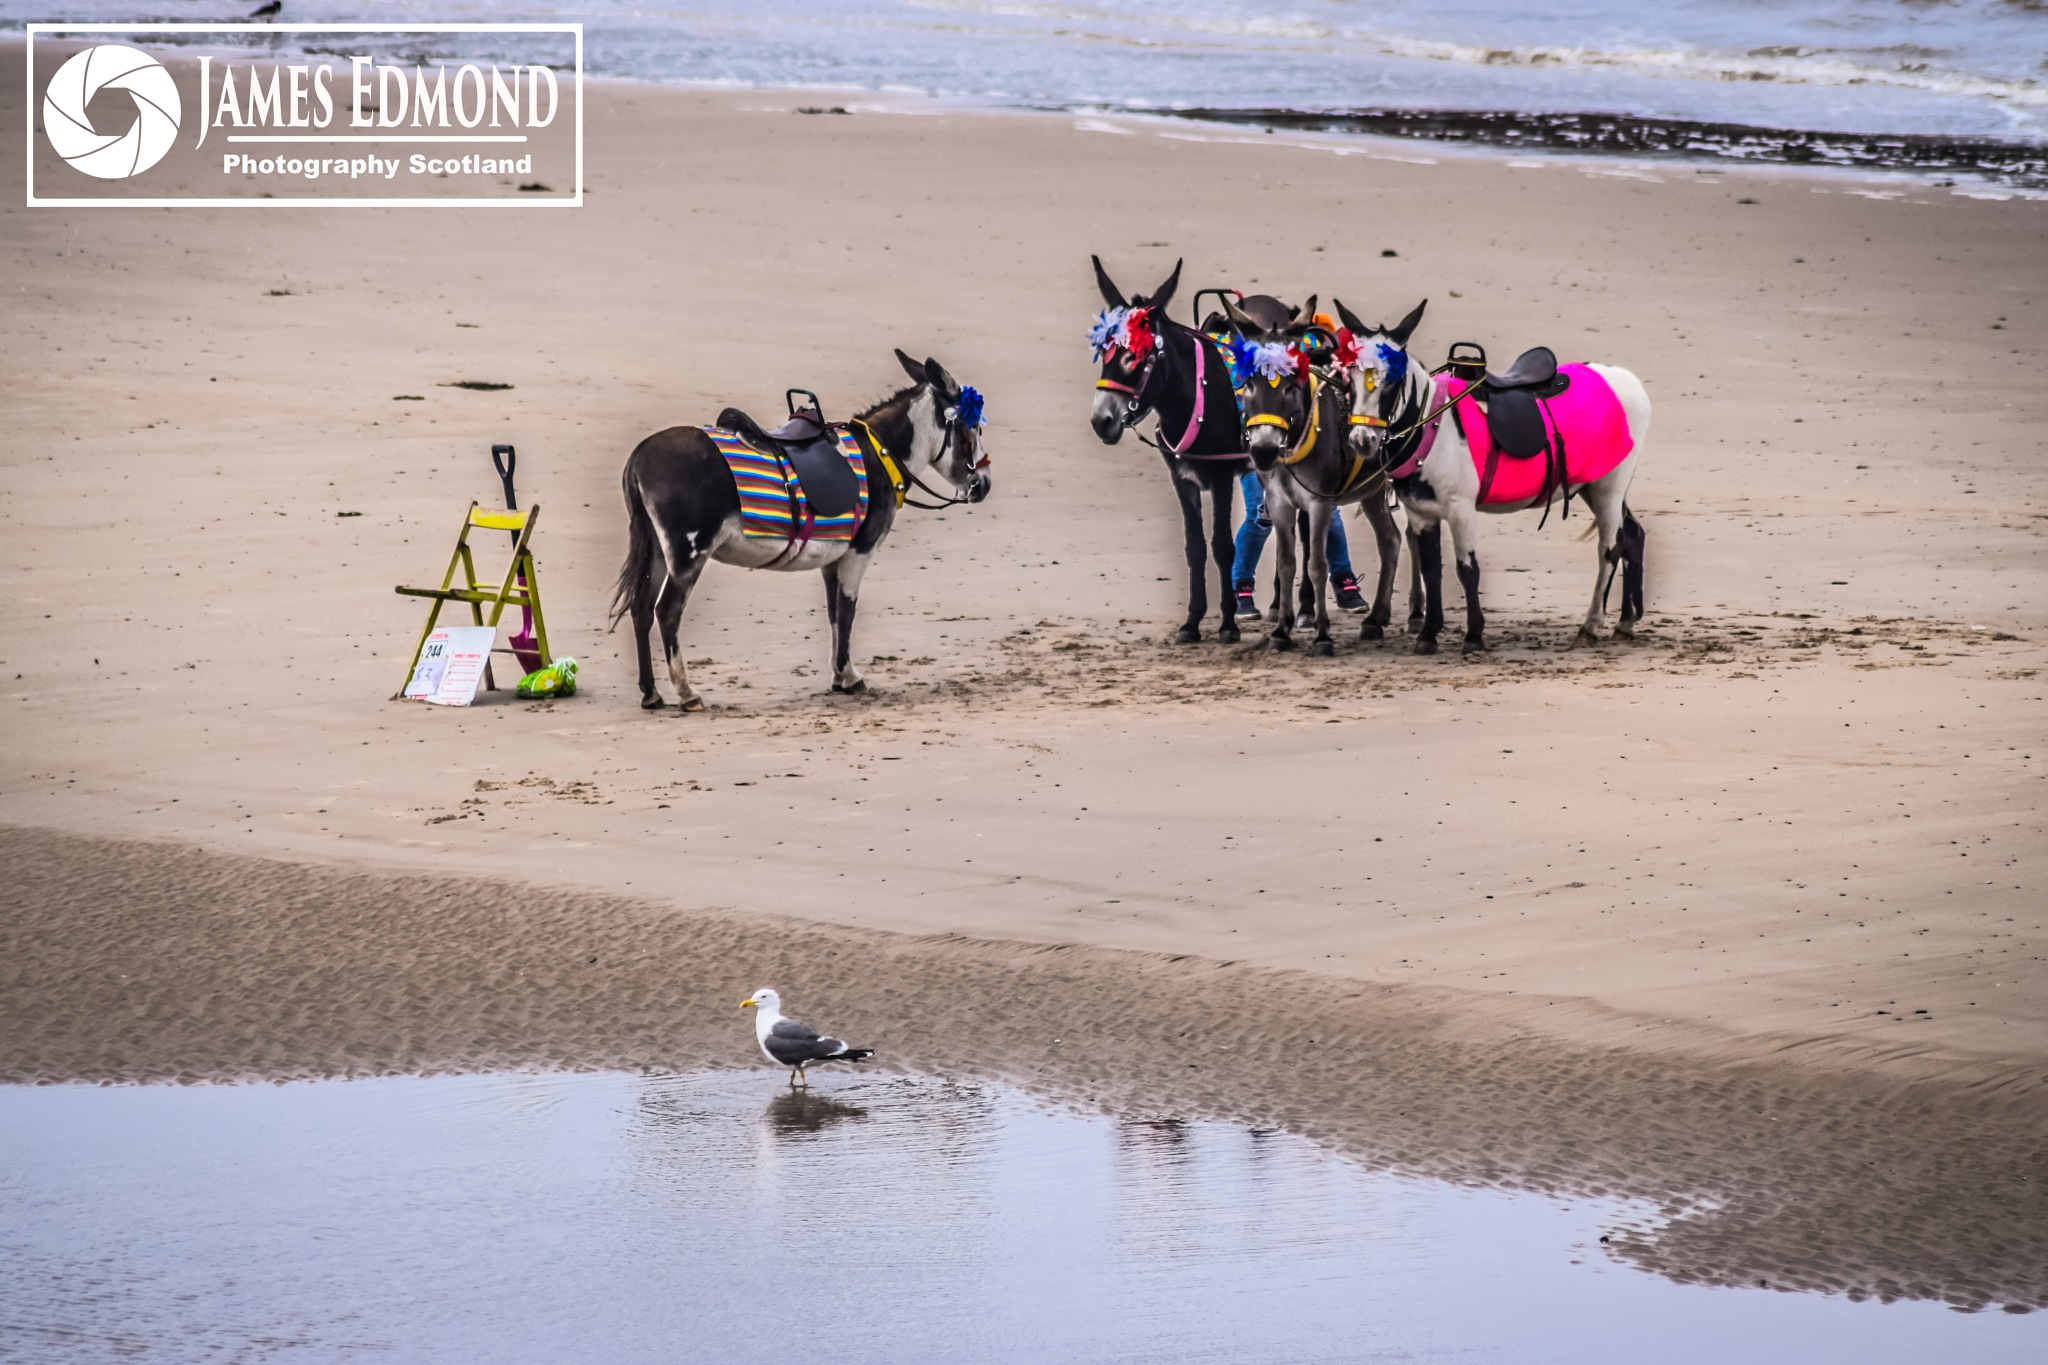 All Quiet on the Beach by James Edmond Photography